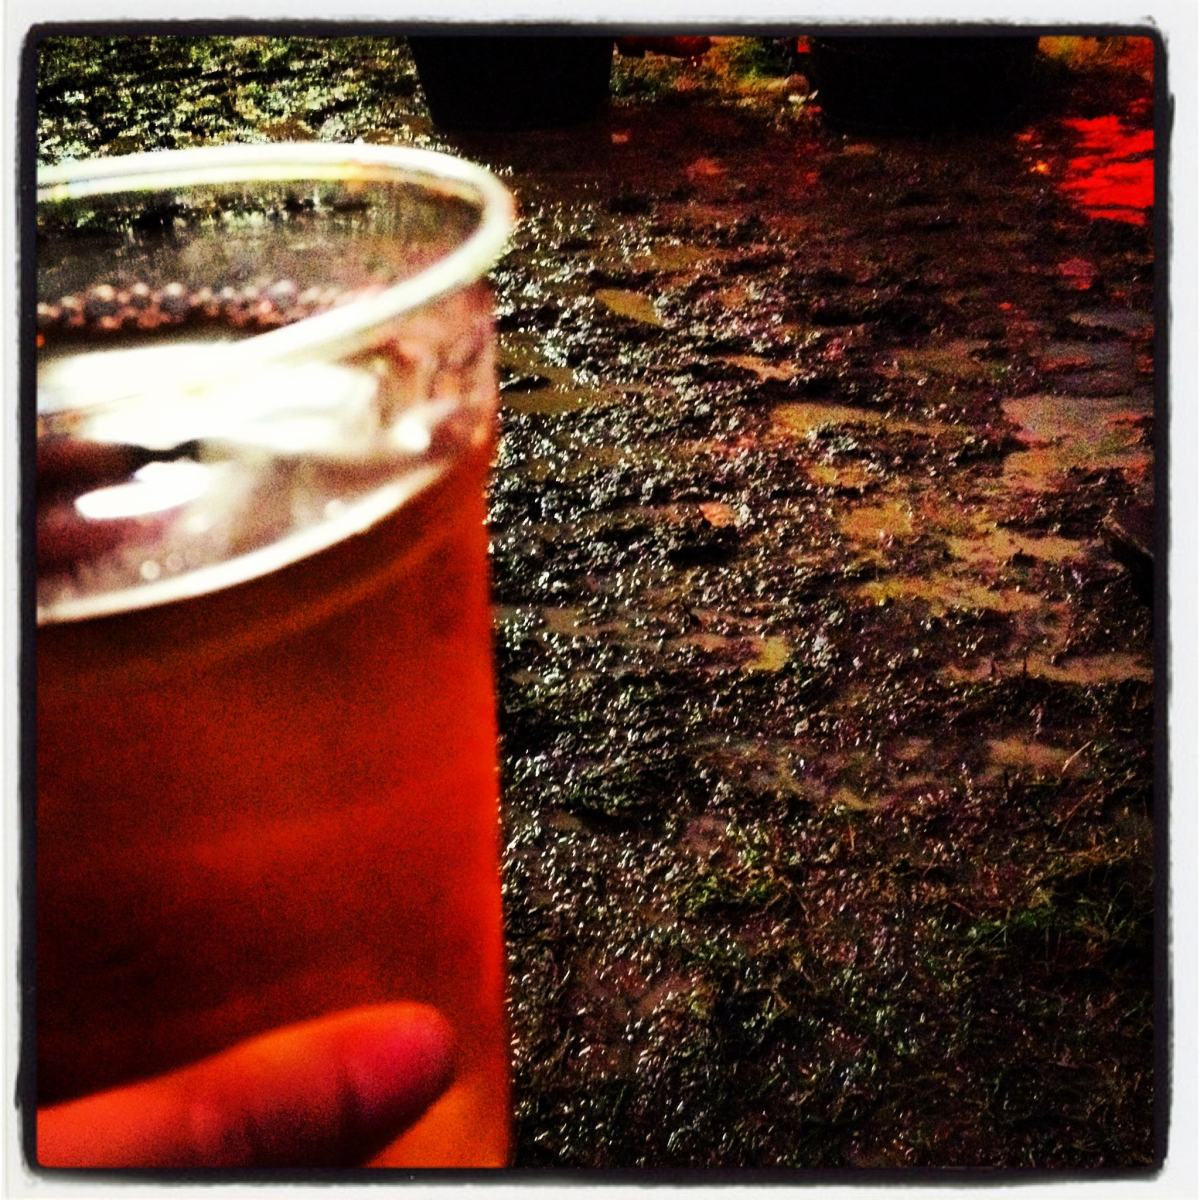 Crazy Goat cider in a muddy Jesus Arms at Greenbelt 2012